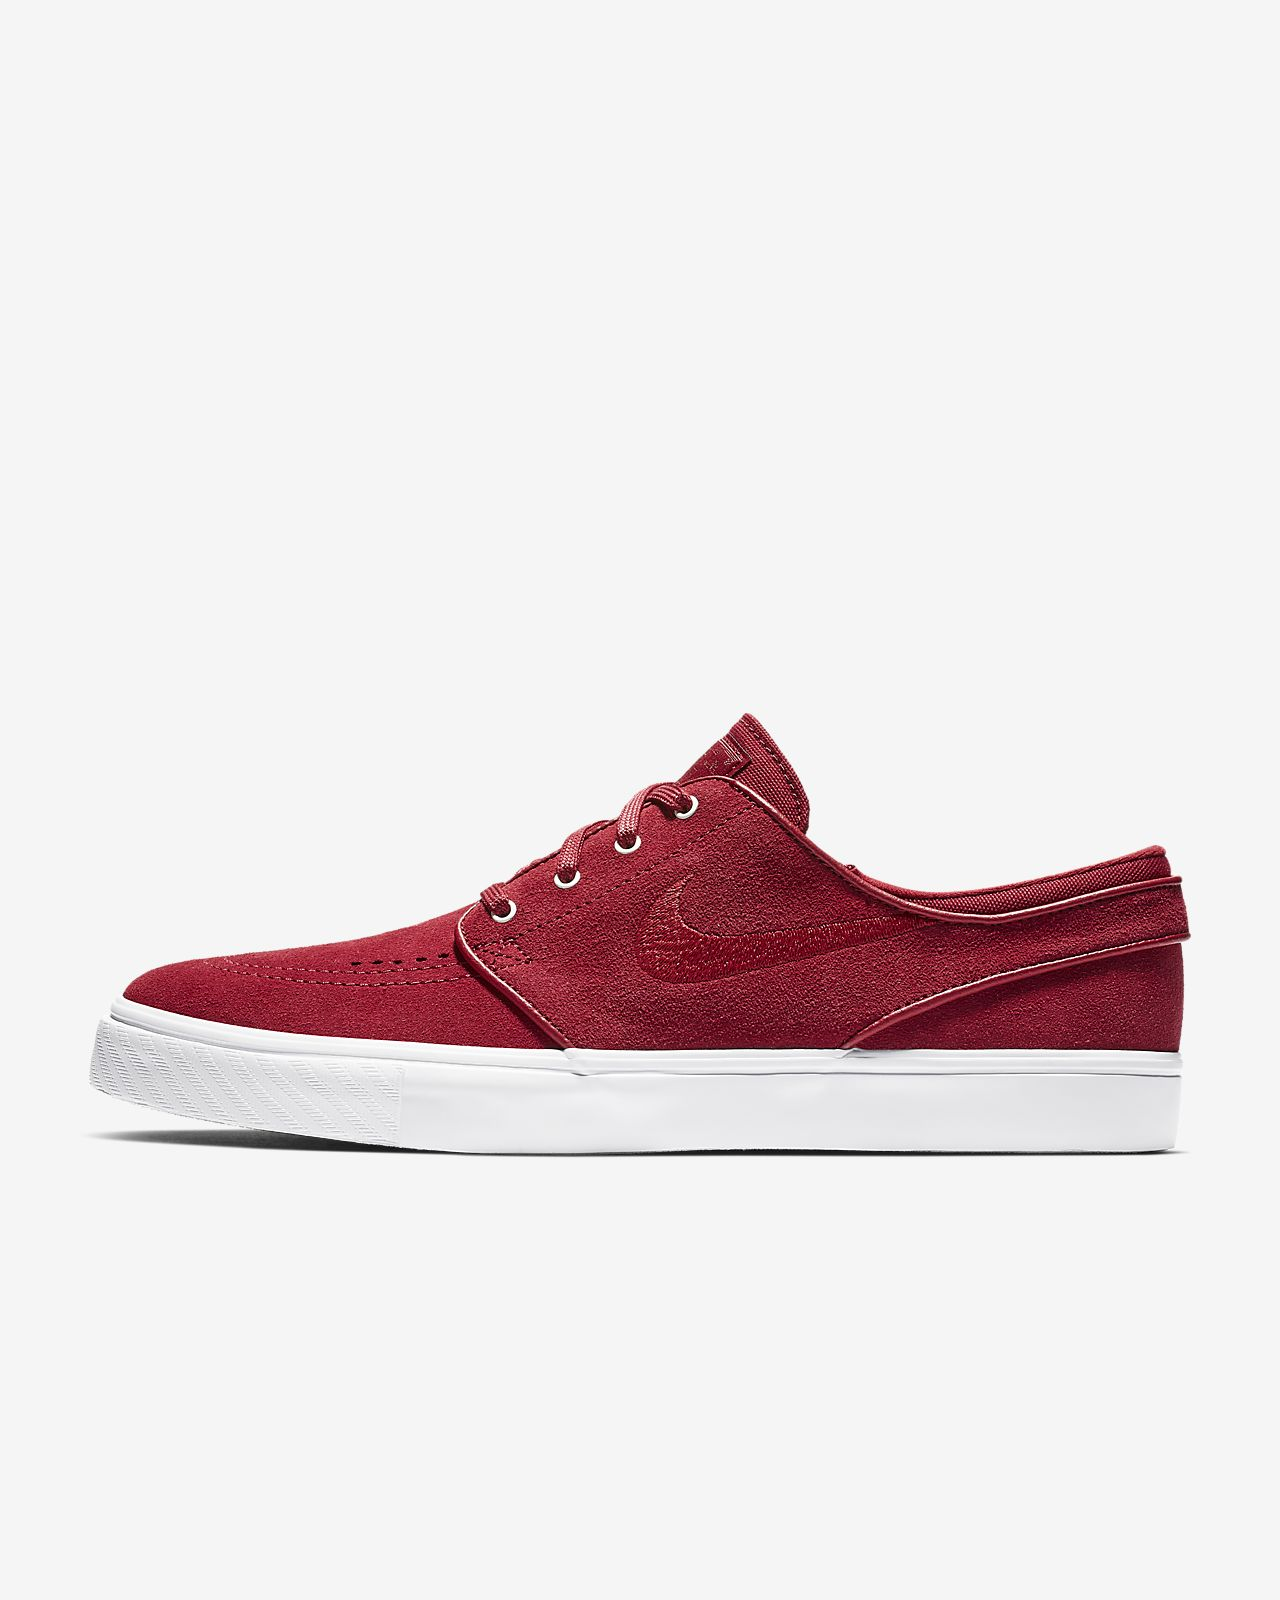 new york 4a2f7 17ebb Low Resolution Nike Zoom Stefan Janoski Men s Skate Shoe Nike Zoom Stefan  Janoski Men s Skate Shoe